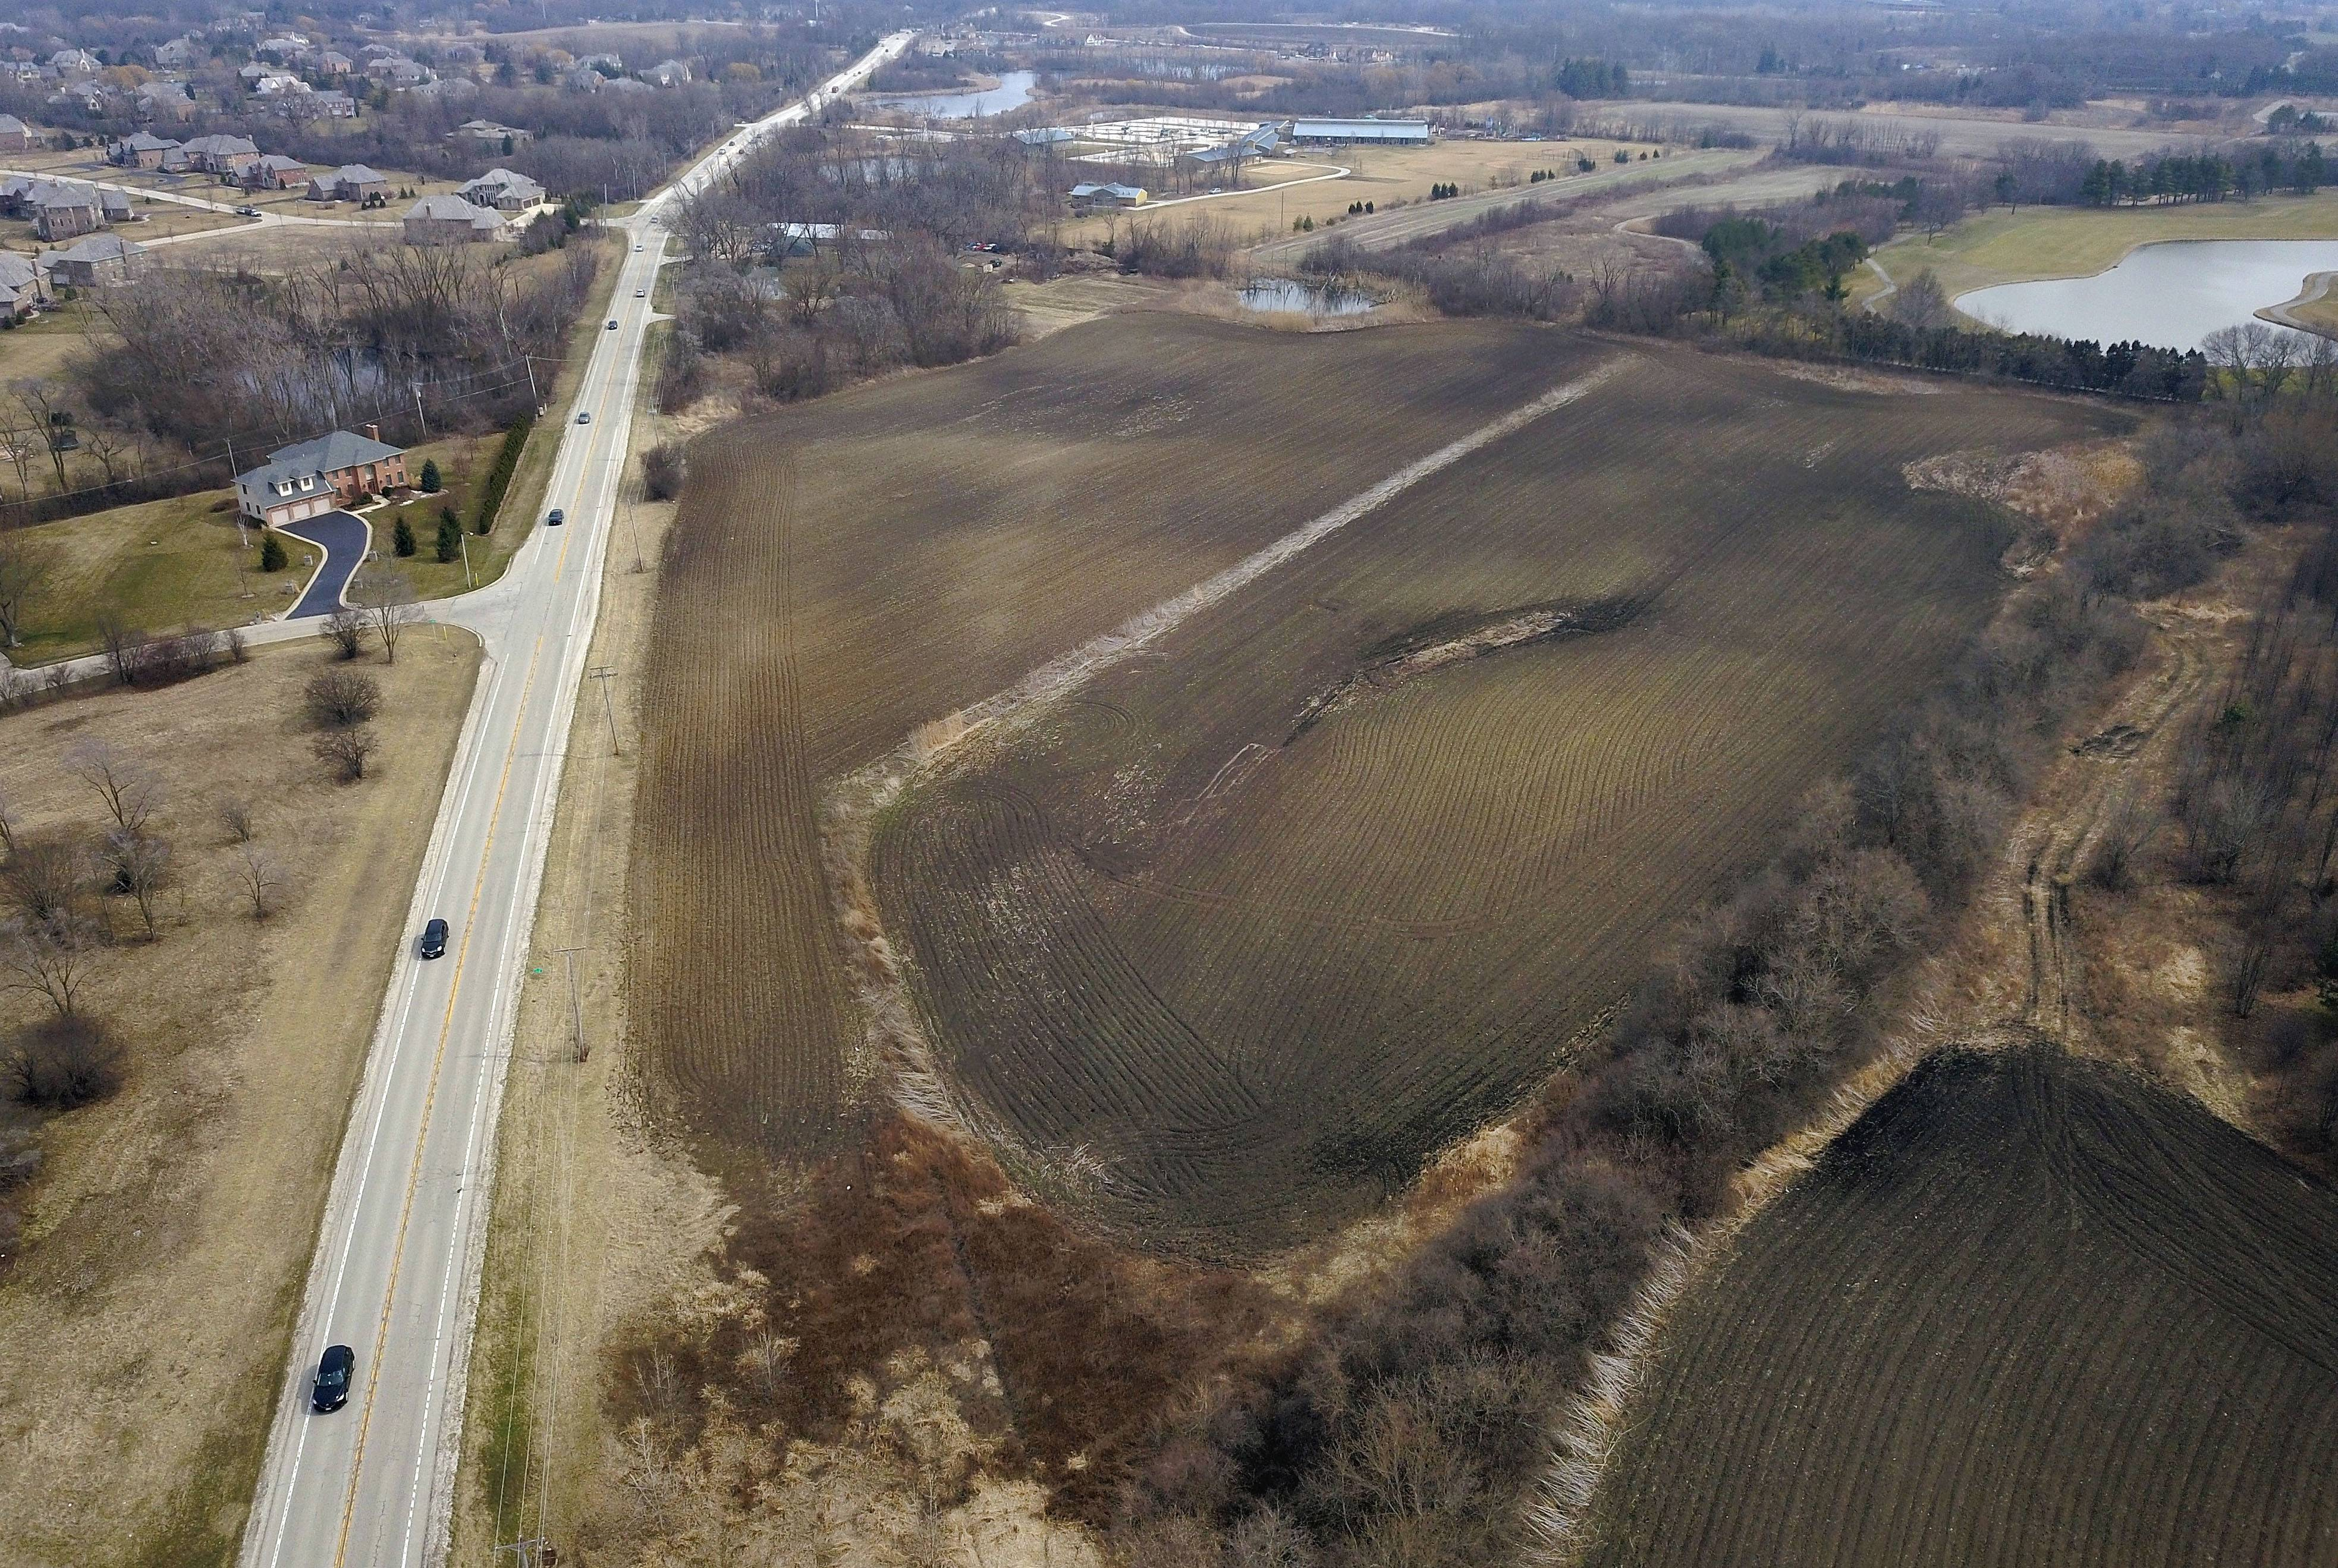 Kildeer's plan commission could issue a recommendation May 8 on a developer's proposal to build homes on this land near Old McHenry Road and Route 22.